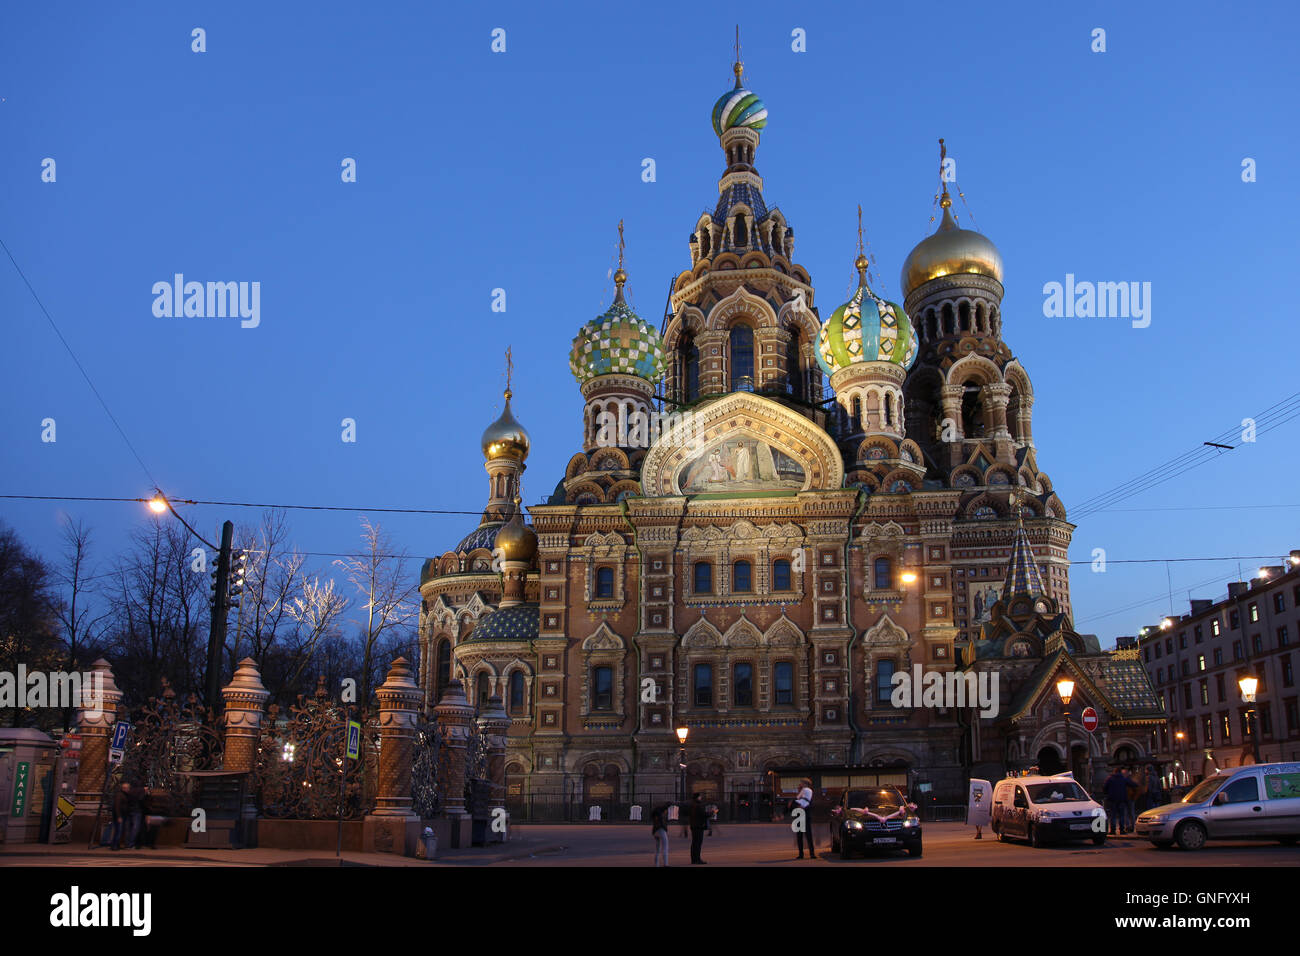 Church of the Savior on Blood in St.Petersburg, Russia - Stock Image